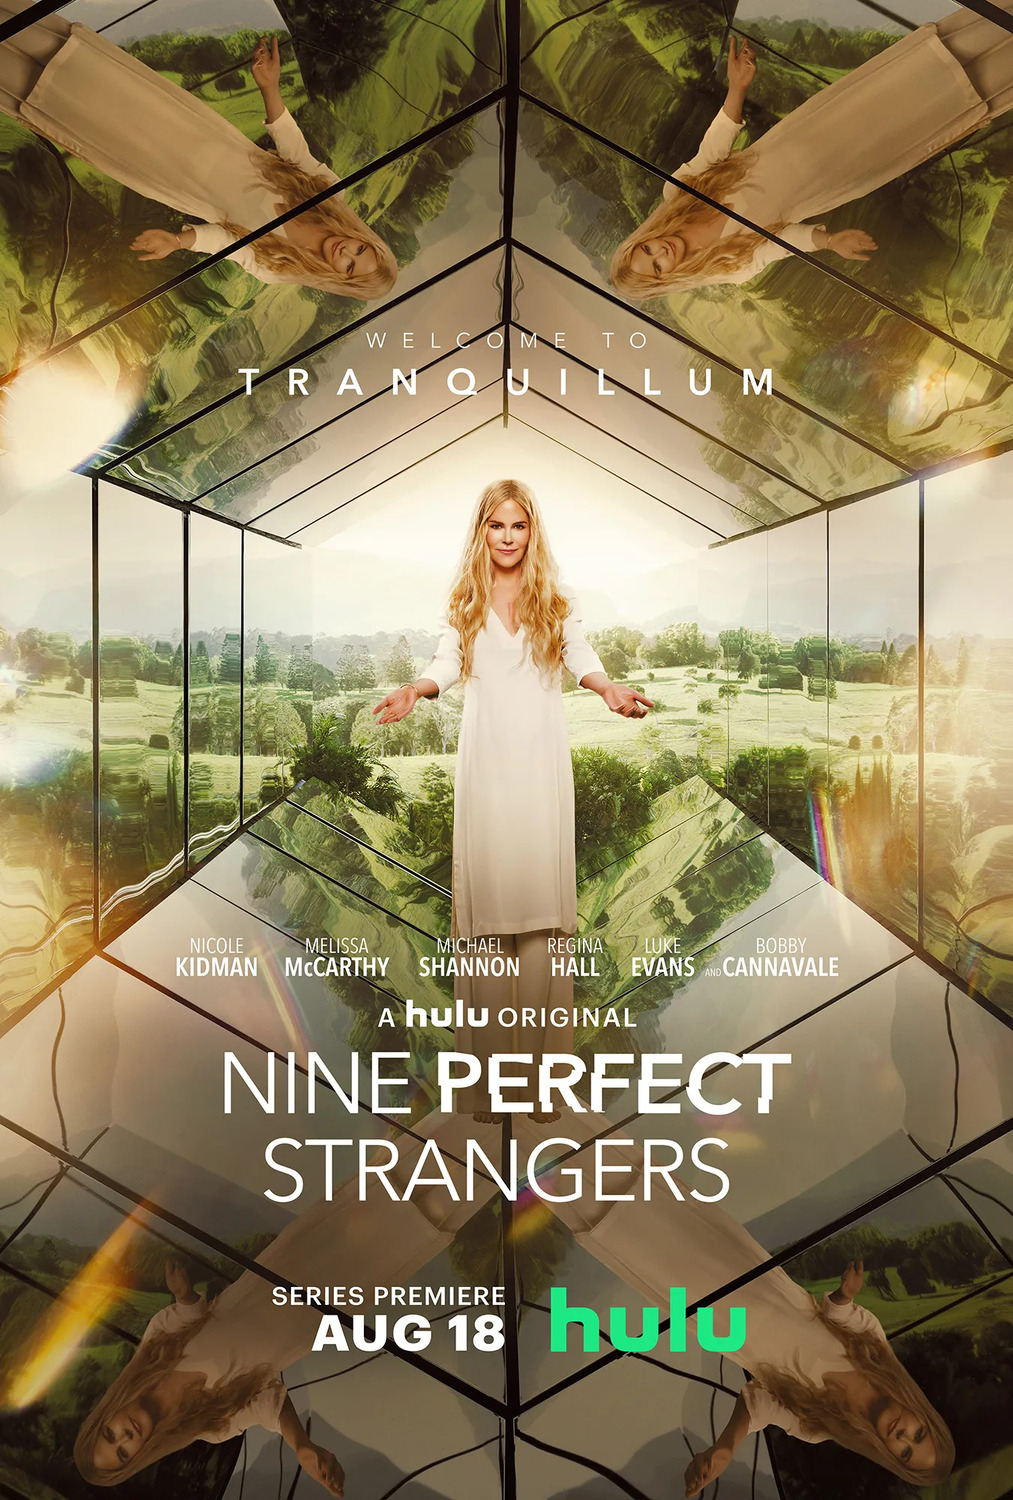 Nine Perfect Strangers S1 (2021) Hindi Completed Web Series HDRip 1GB Download